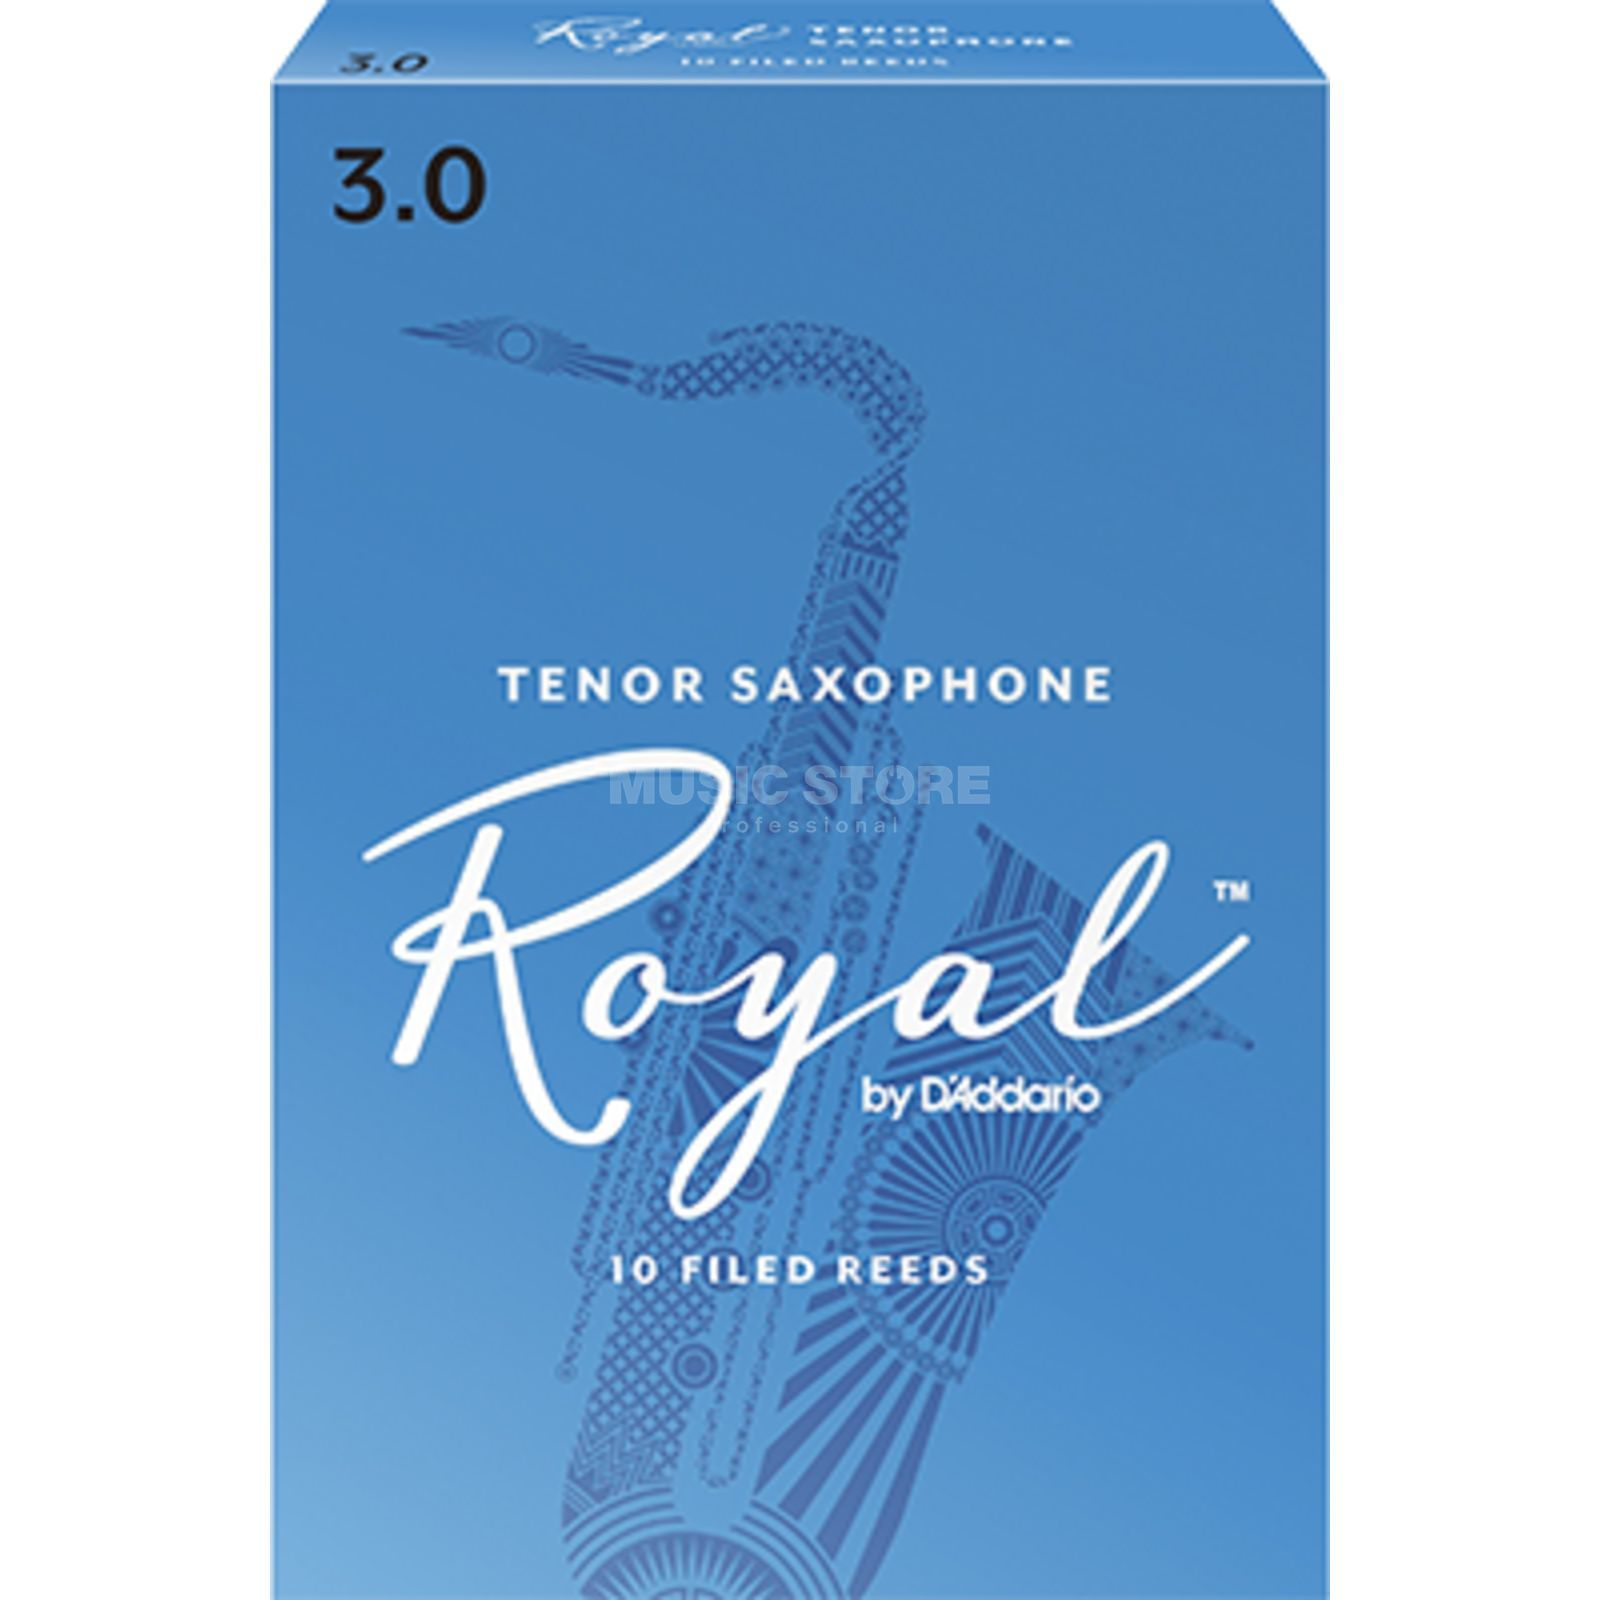 D'Addario Tenor Saxophone Reeds 3 Box of 10 Product Image